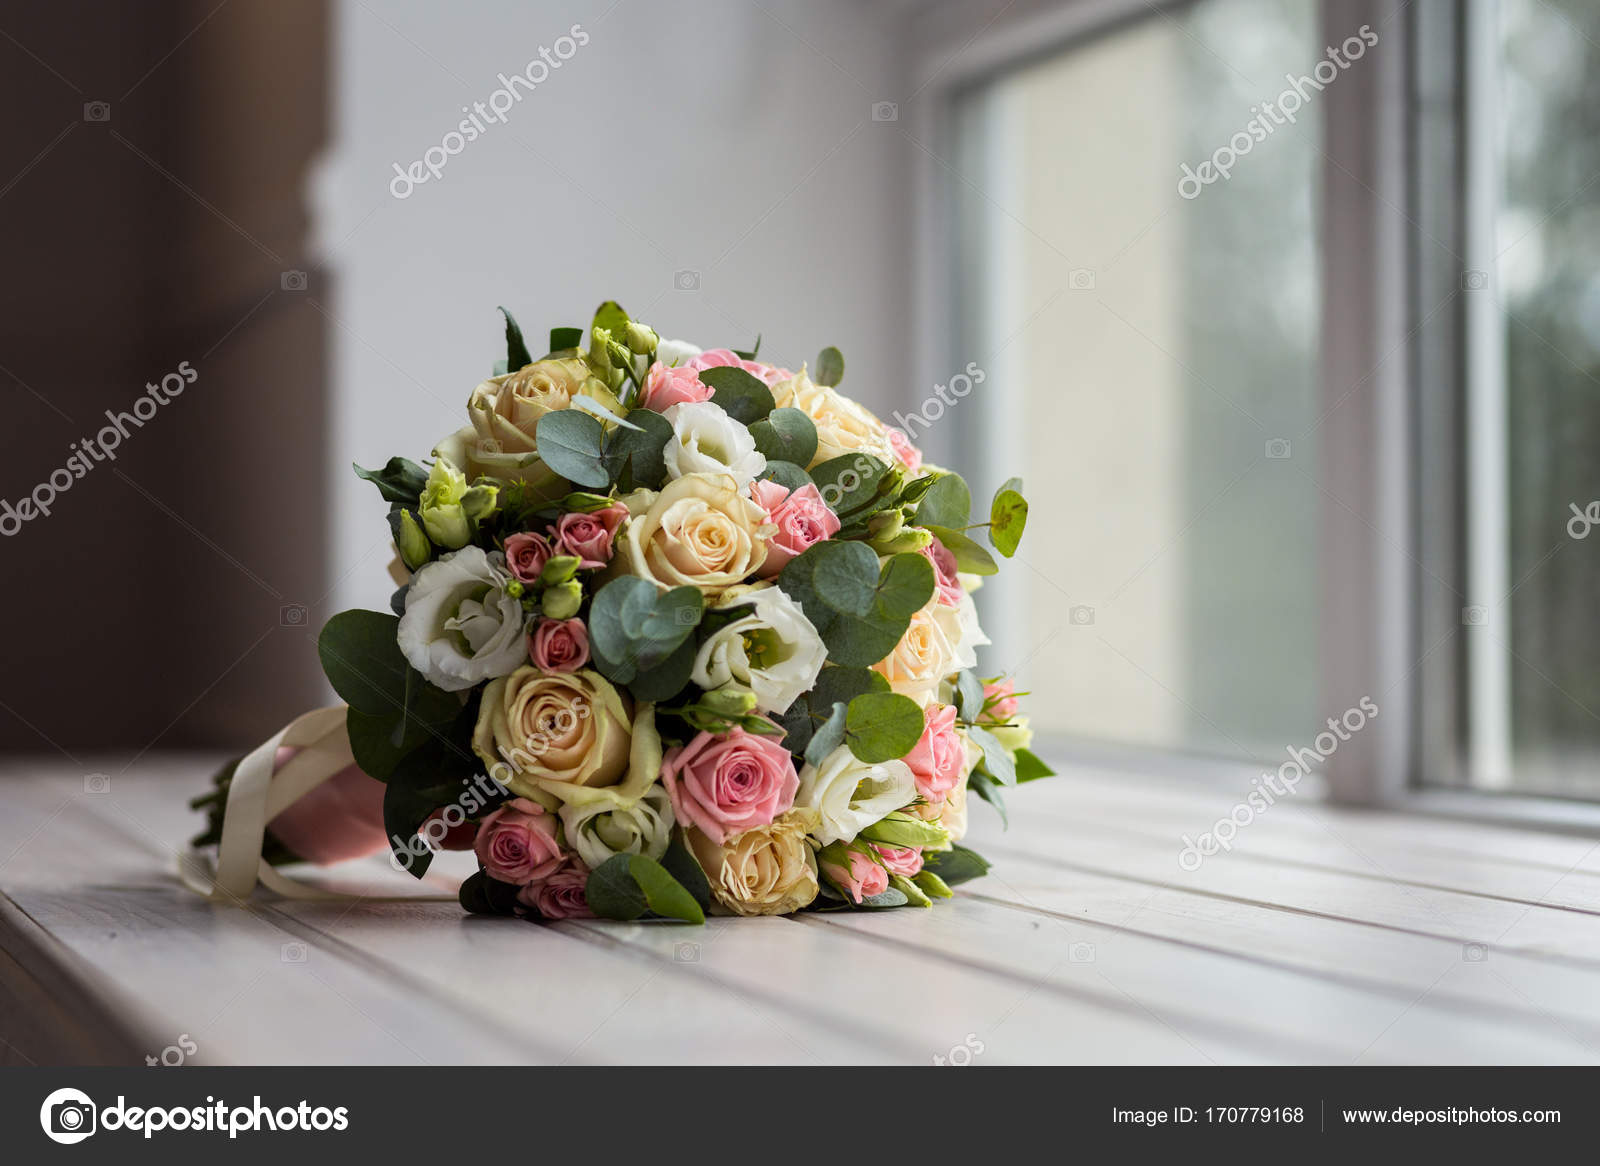 Beautiful Bridal Bouquet Lying On The Table A Beautiful Wedding